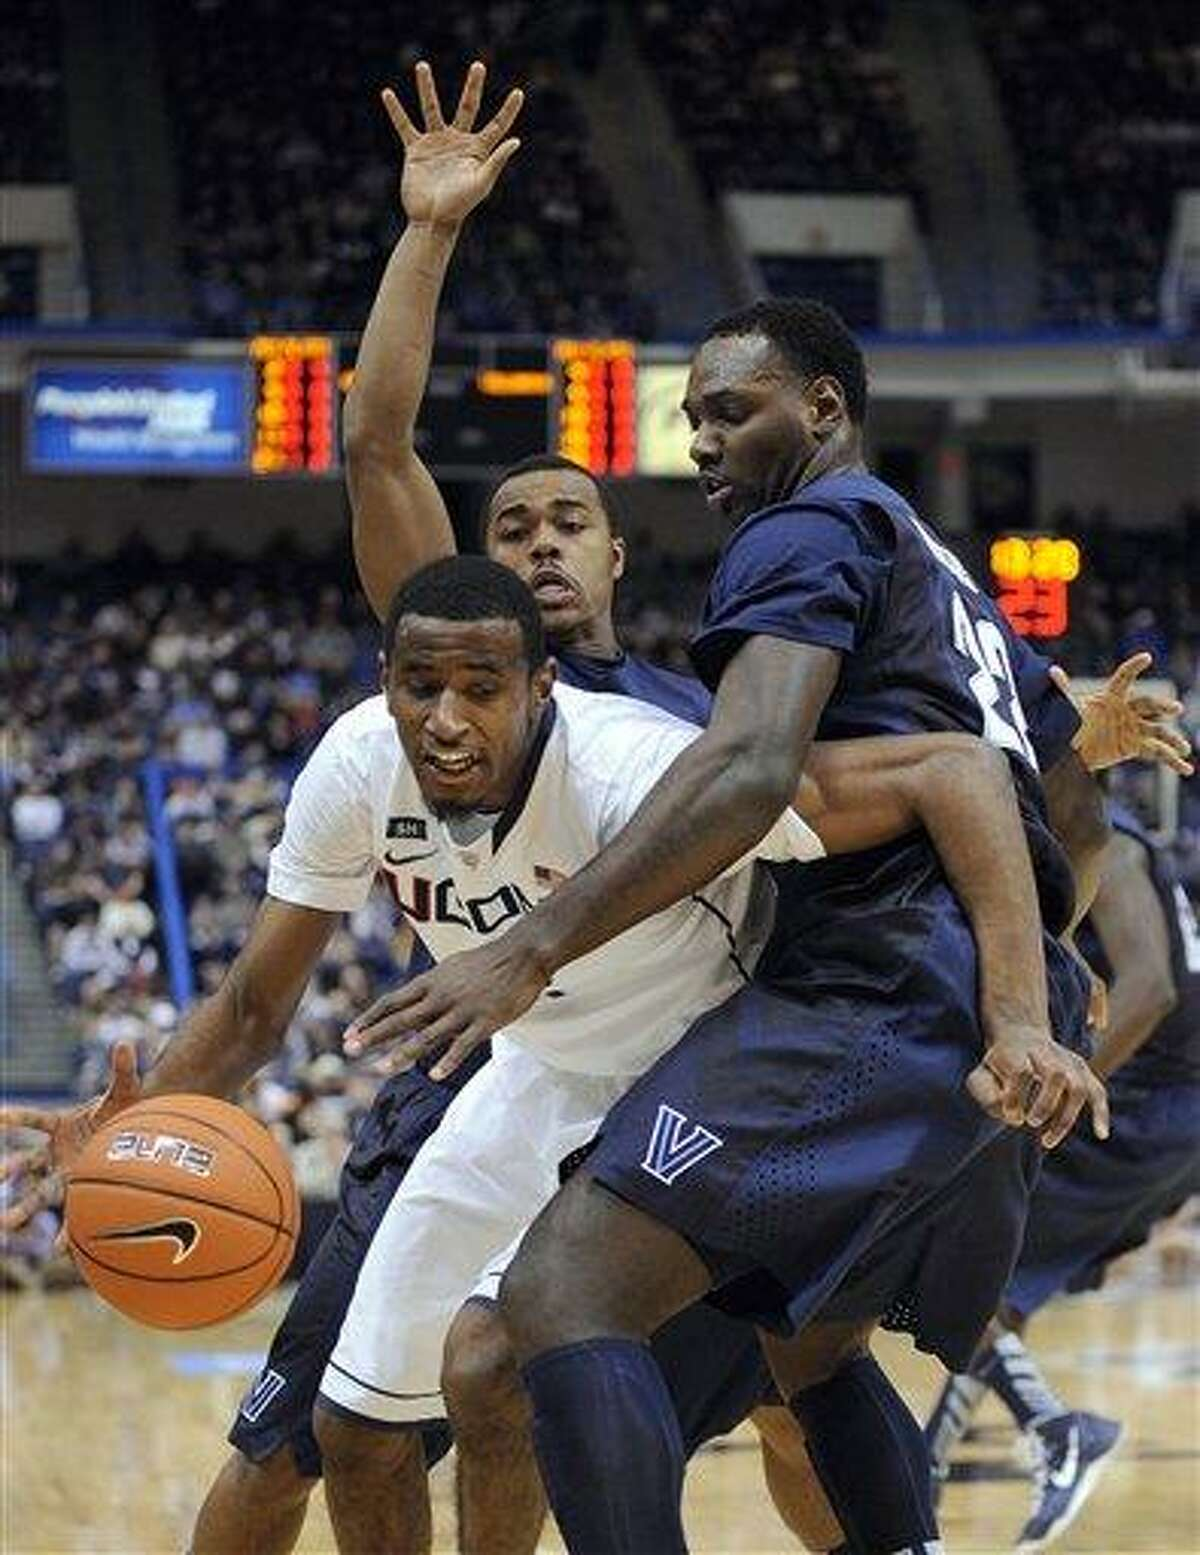 Connecticut's DeAndre Daniels is guarded by Villanova's JayVaughn Pinkston, right, and Tony Chennault during the first half of an NCAA college basketball game in Hartford, Conn., Saturday, Feb. 16, 2013. Villanova won the game 70-61. (AP Photo/Fred Beckham)